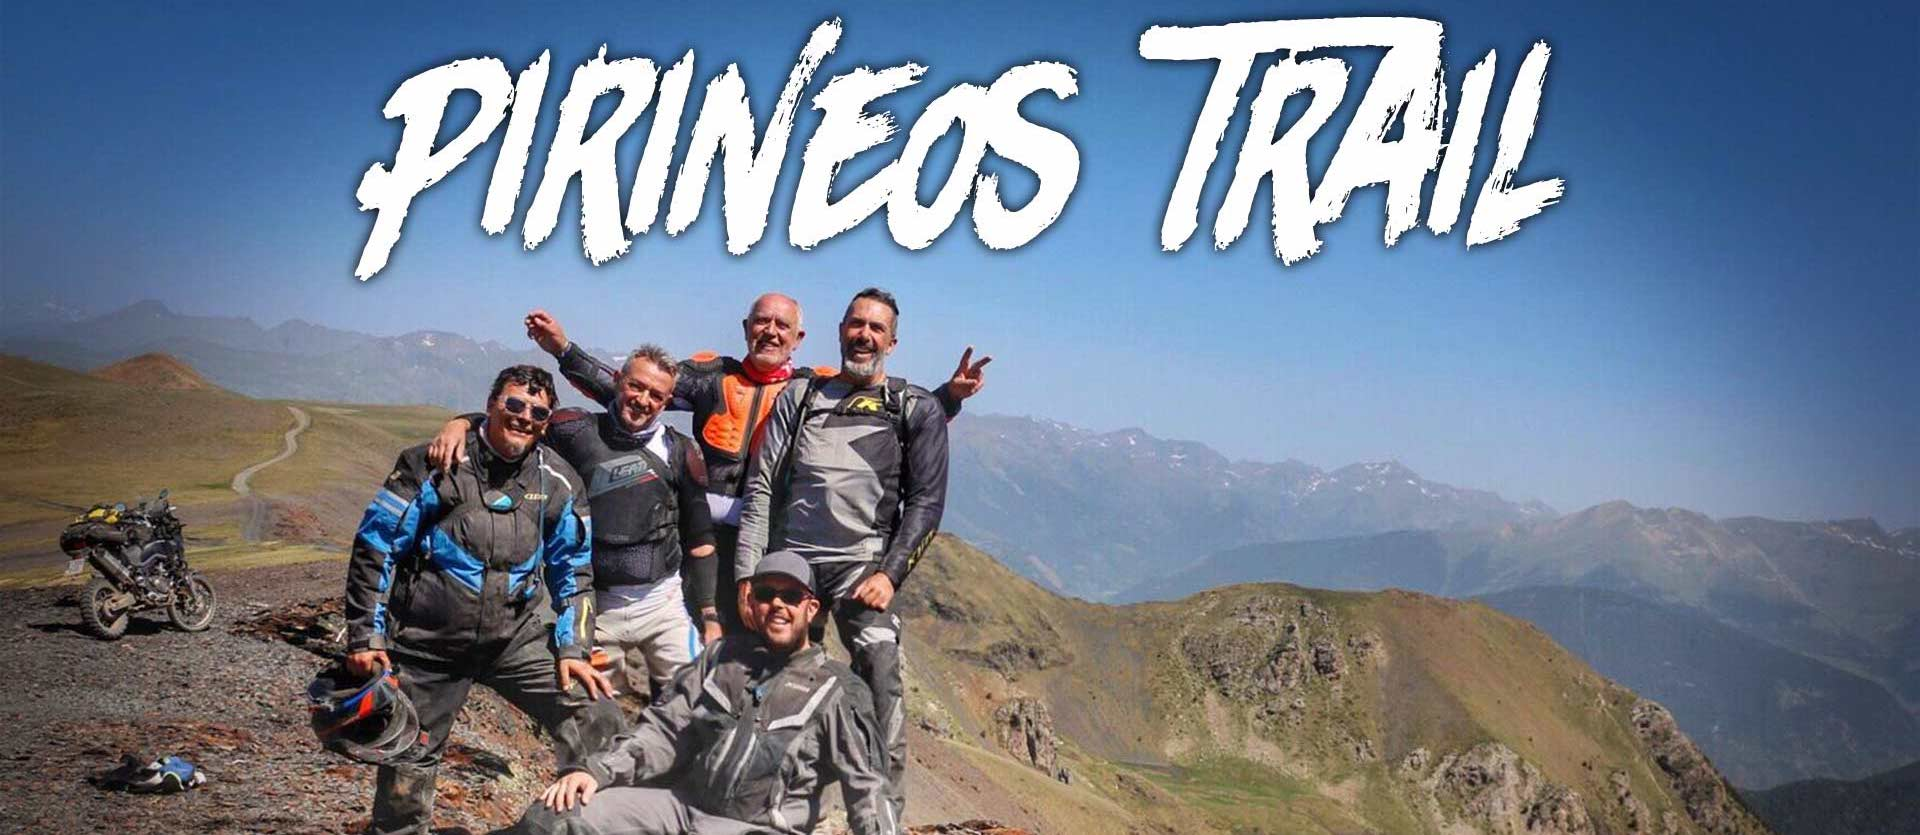 Pirineos Trail